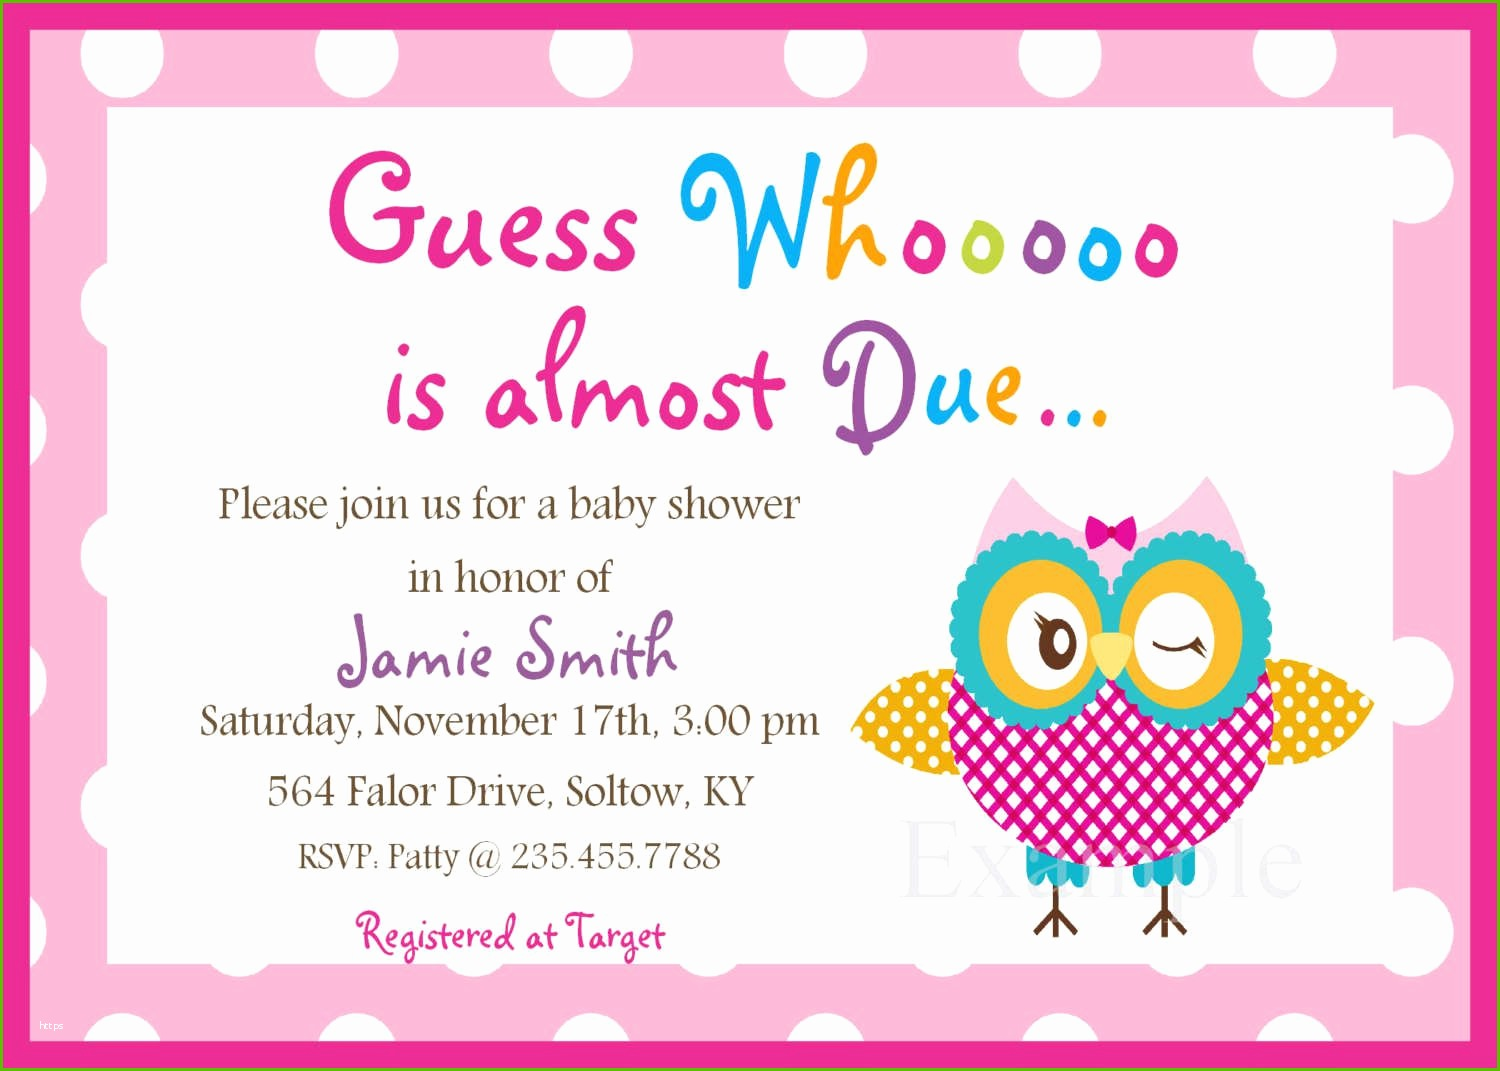 Full Size of Baby Shower:sturdy Baby Shower Invitation Template Image Concepts Baby Shower Invitation Card Template Free Download Admirably Baby Baby Shower Invitation Card Template Free Download Admirably Baby Shower Invitations Templates Free Download